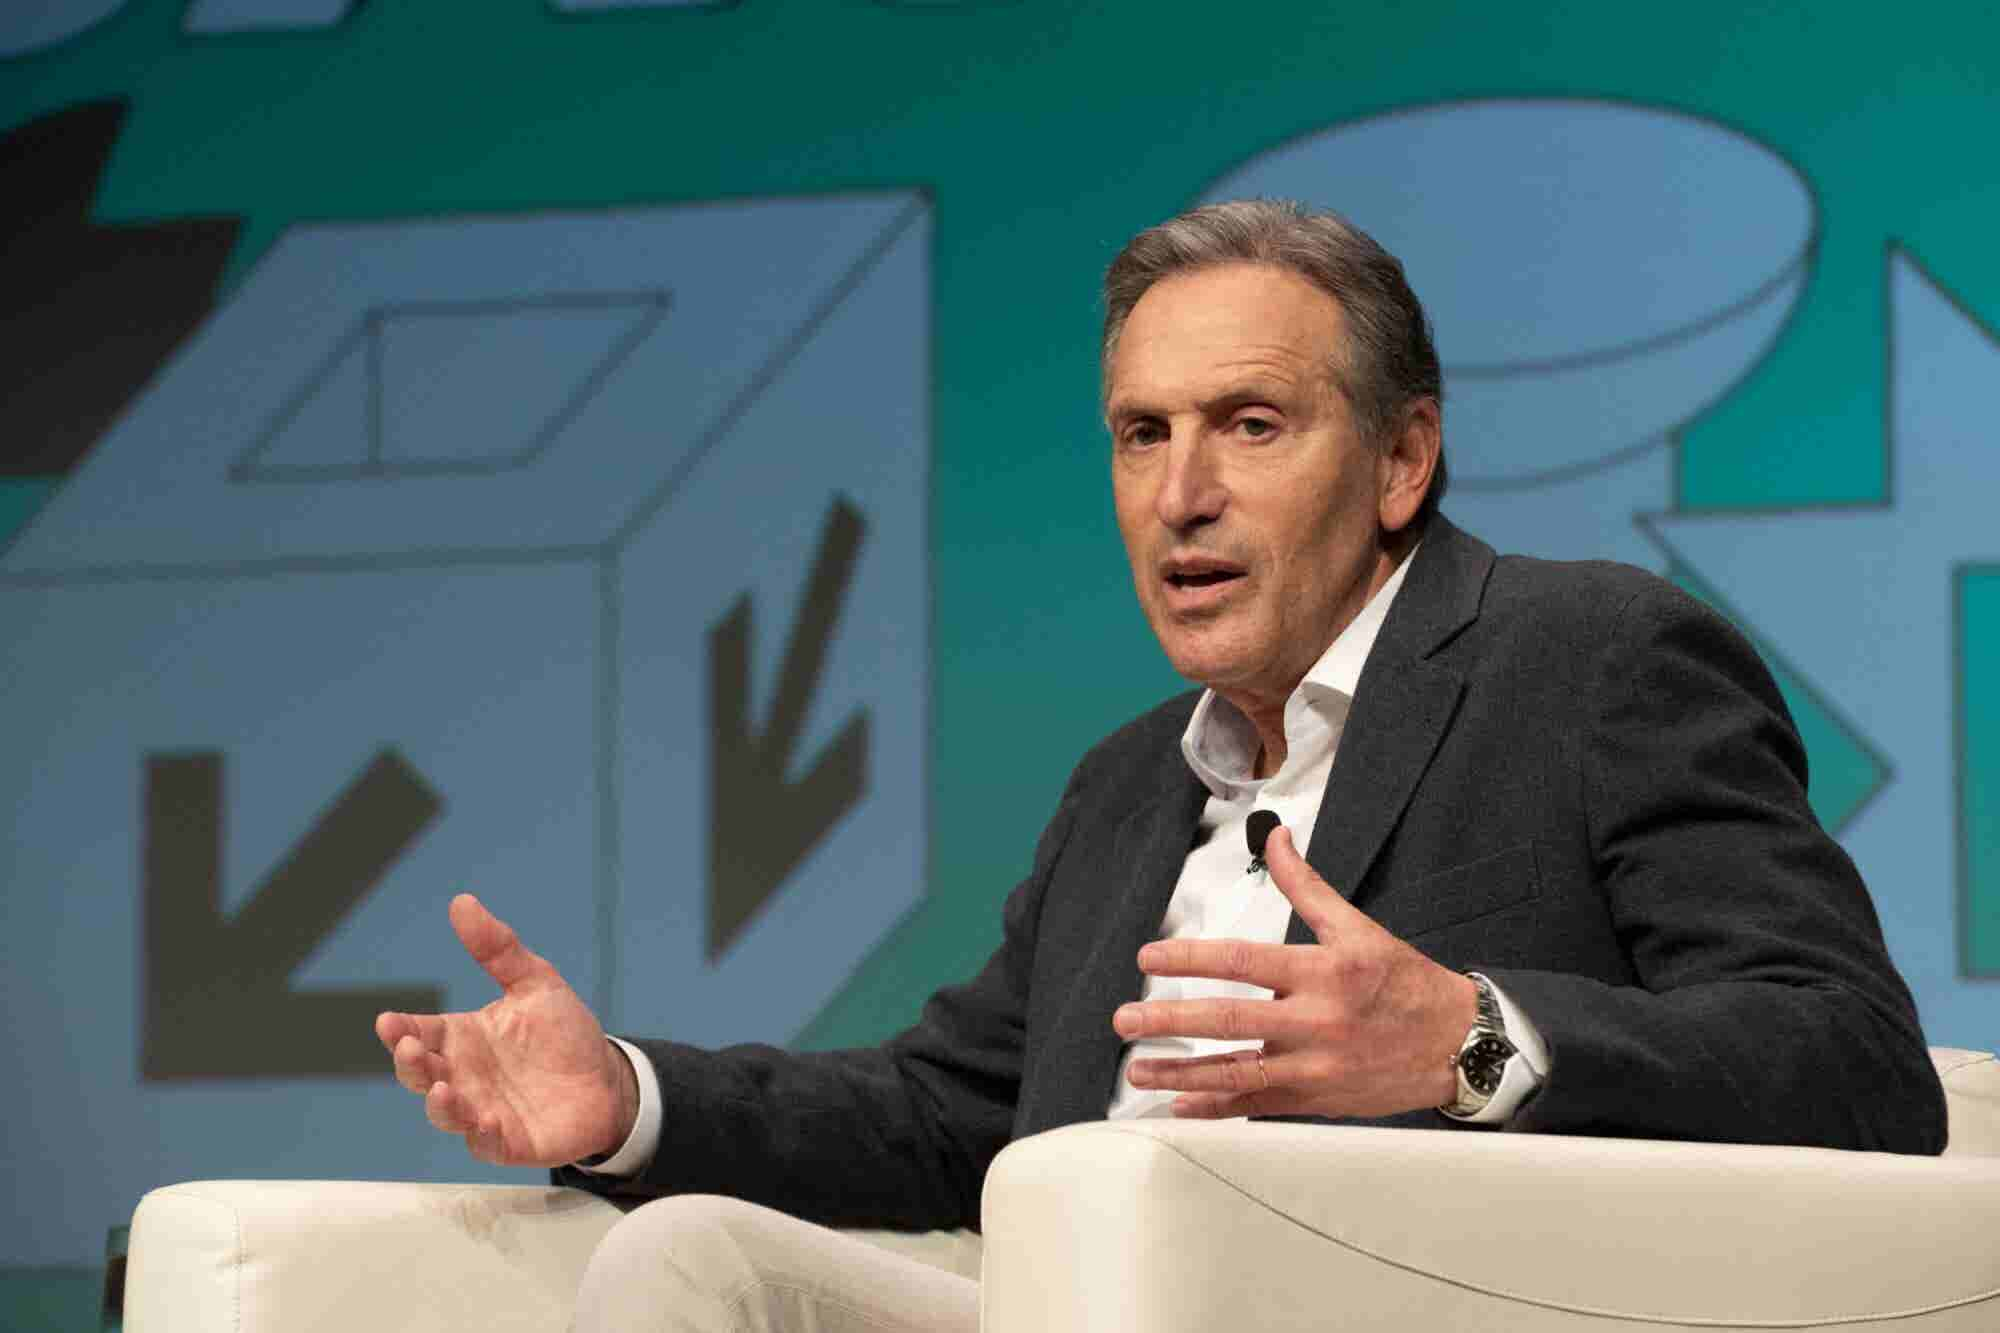 'Success Is Not an Entitlement; You Have to Earn It Every Day,' Howard Schultz Says